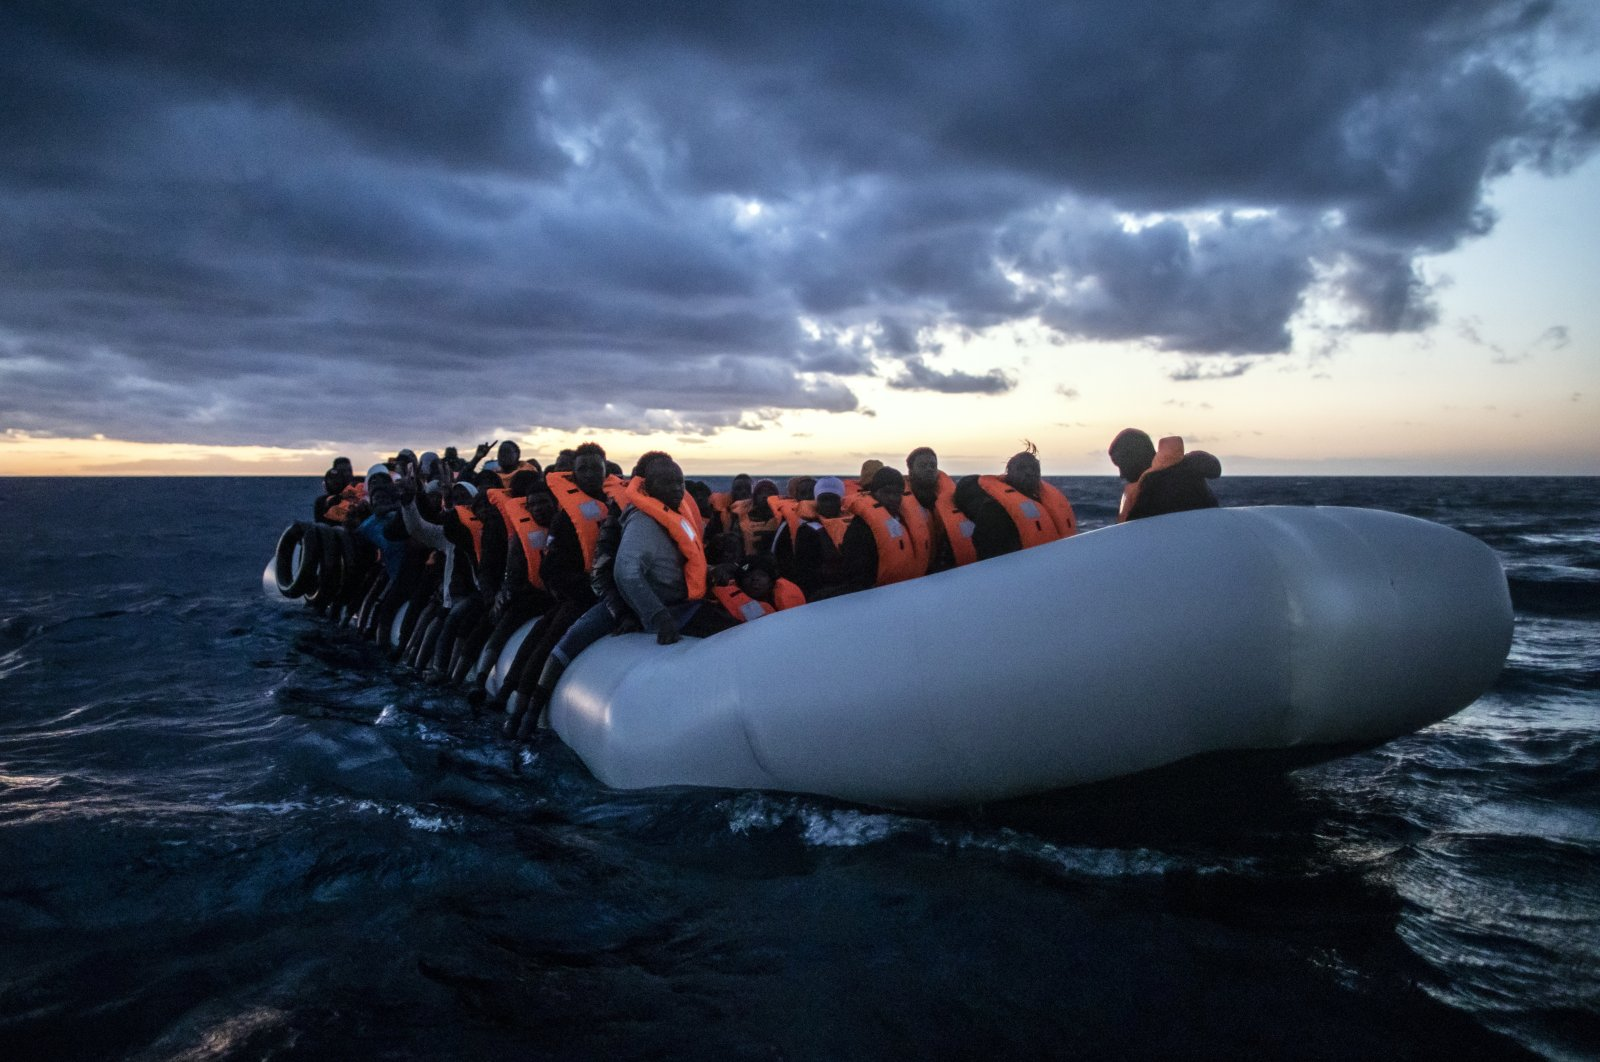 Migrants and refugees from various African nationalities wait on a rubber boat as aid workers on a rescue vessel of the Spanish NGO Open Arms approach in international waters in the Mediterranean Sea, 80 miles off the Libyan coast, Feb. 13, 2021. (AP Photo)